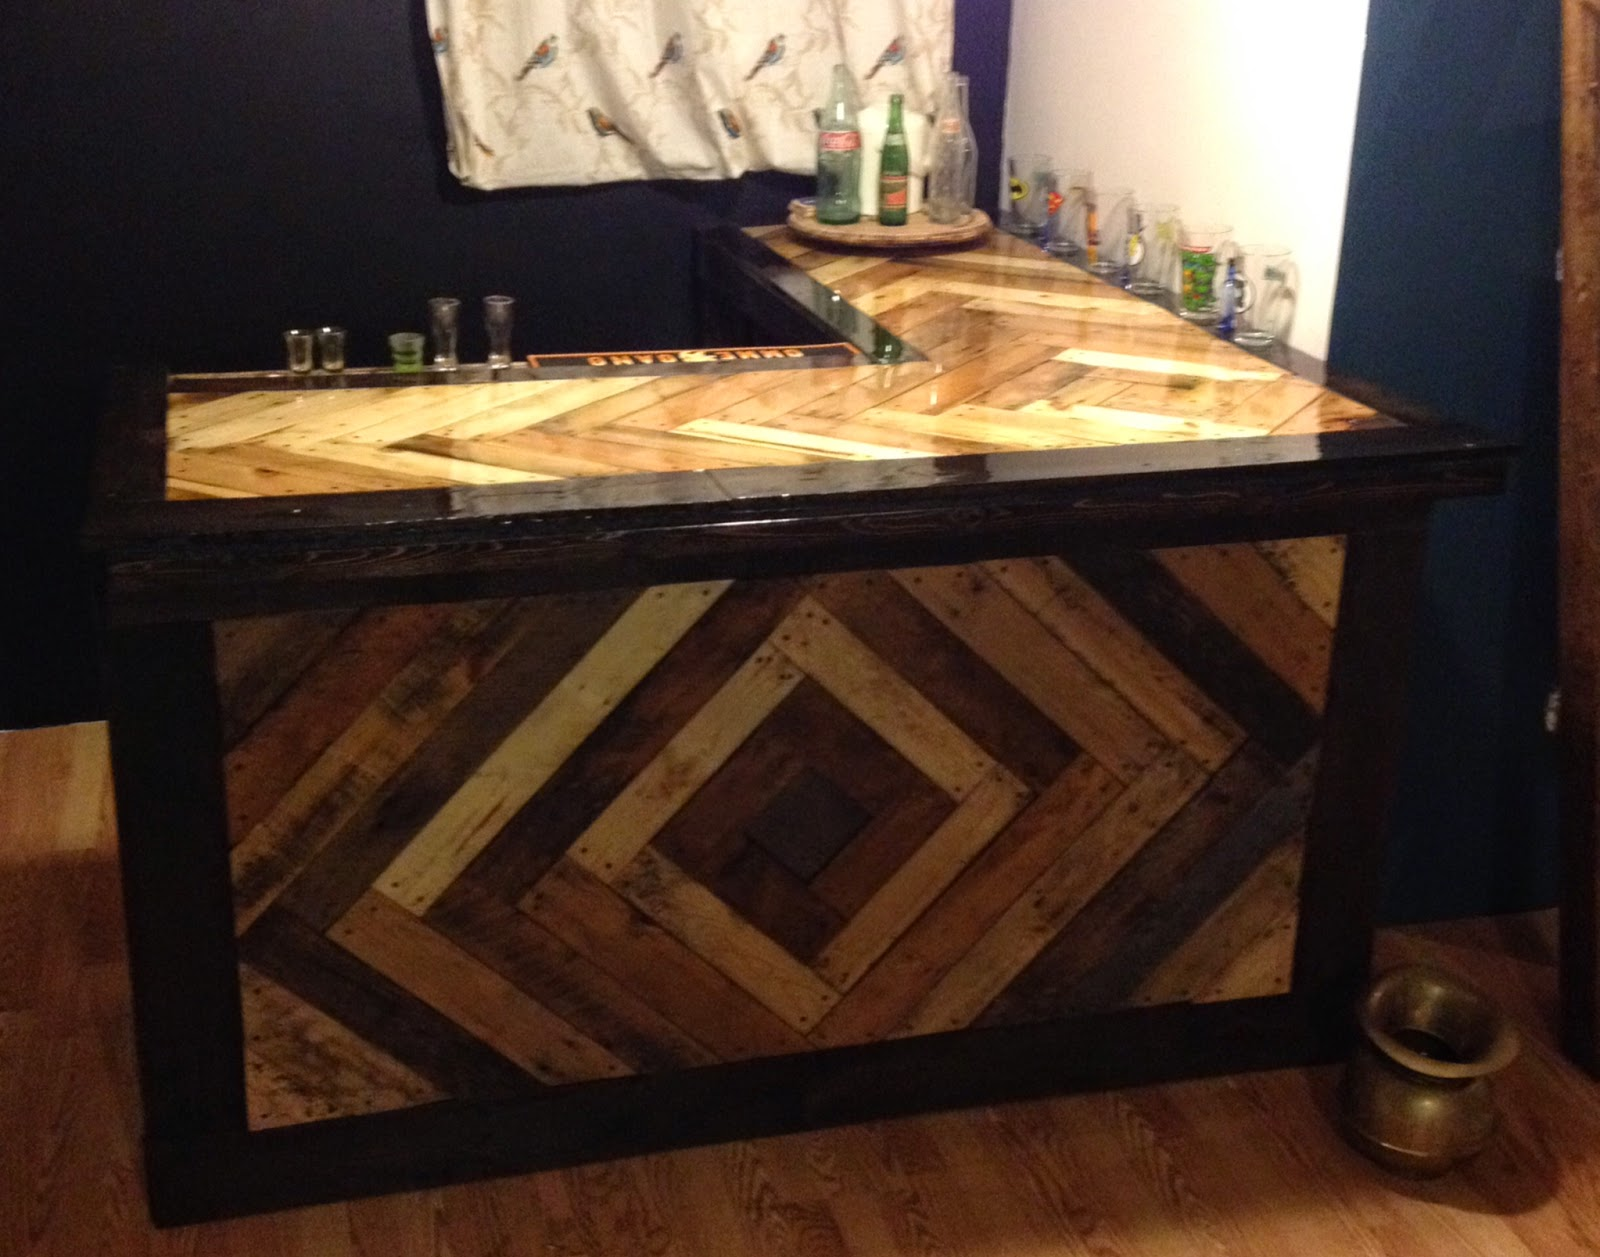 How To Build A Bar From Pallets Sketches for the bar top and